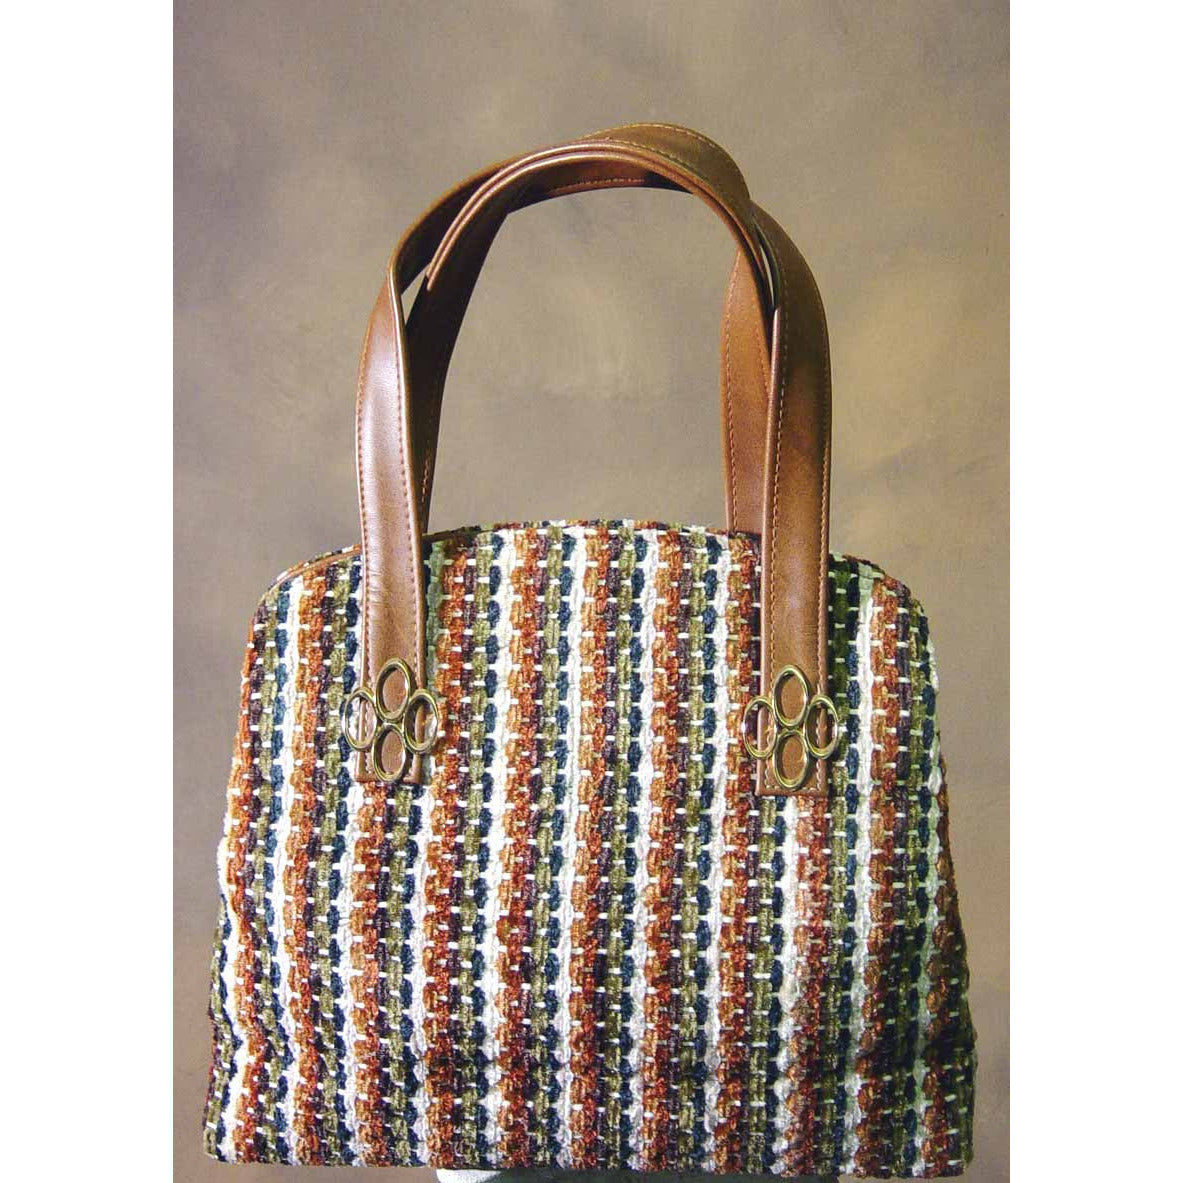 Vintage Italian Multi-Color Carpetbag Purse